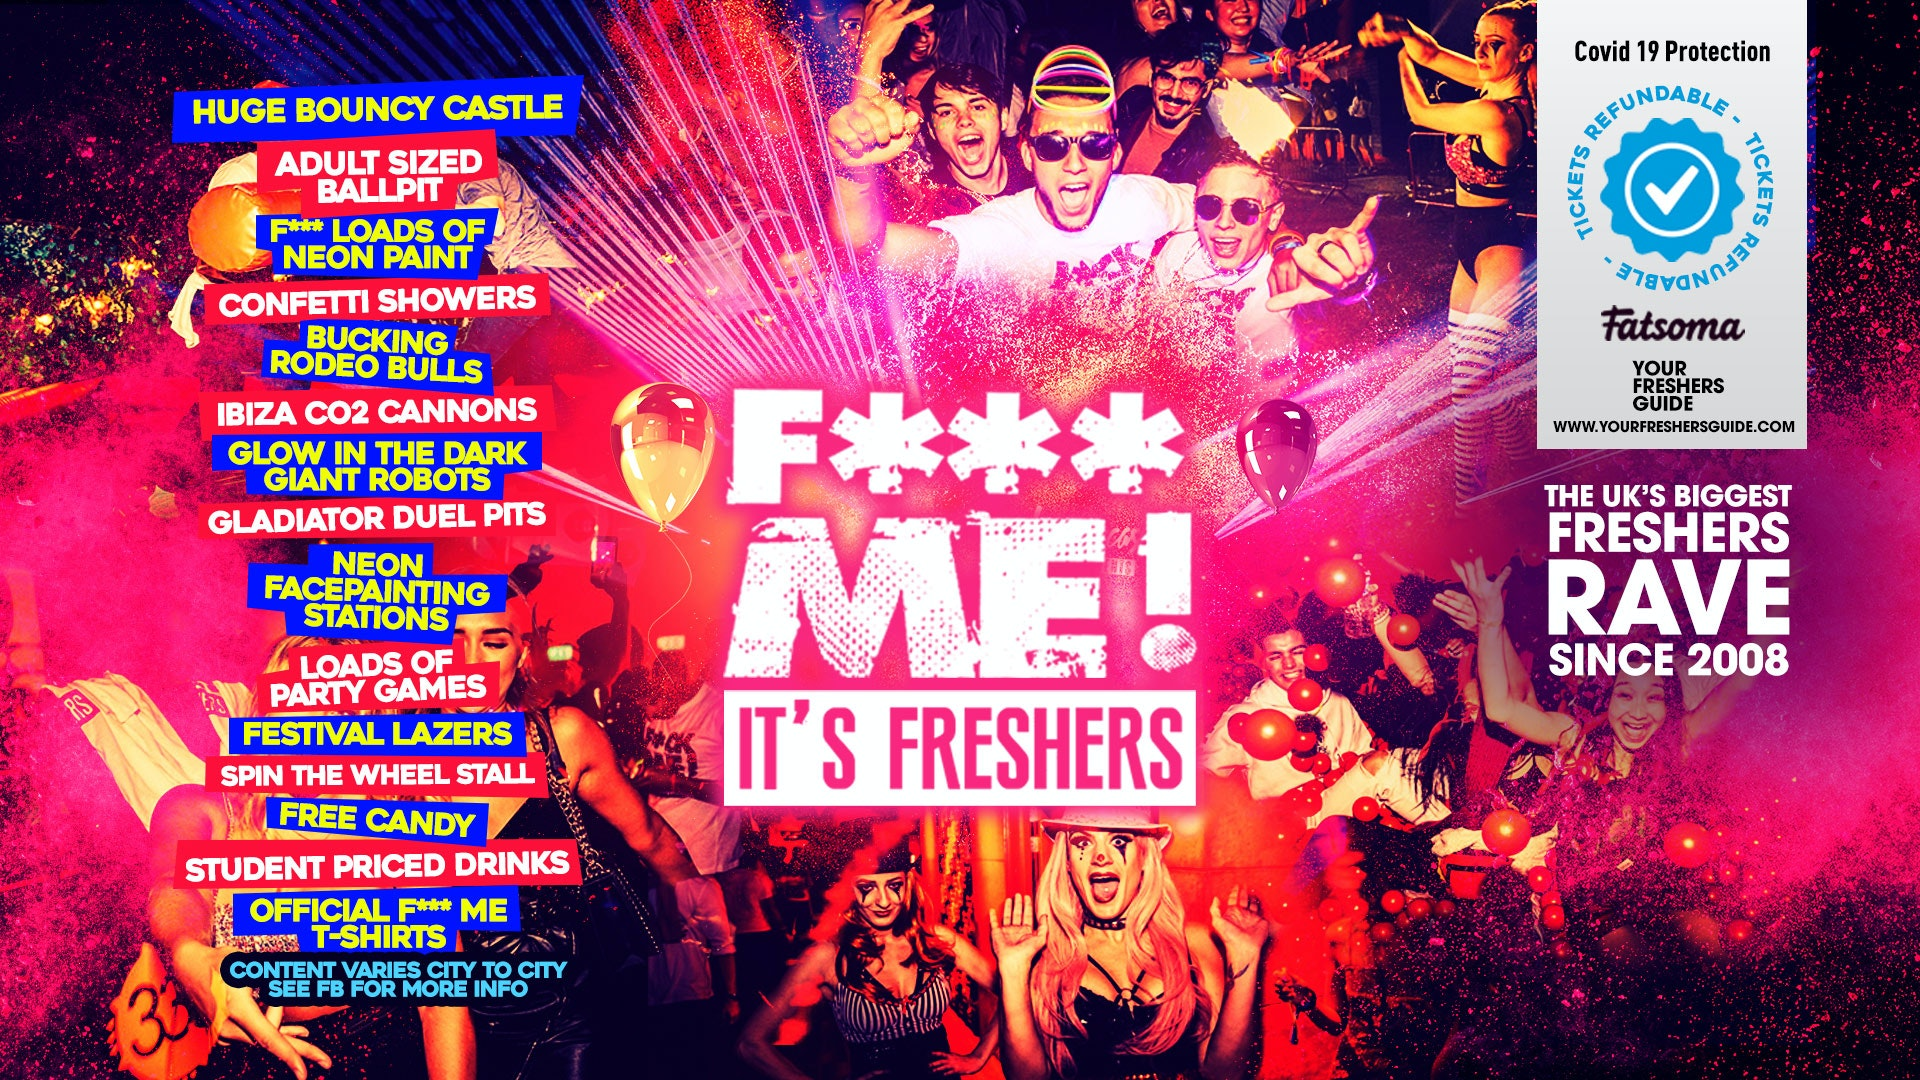 F*CK ME It's Freshers | Brighton Freshers 2021 – First 100 Tickets £3!